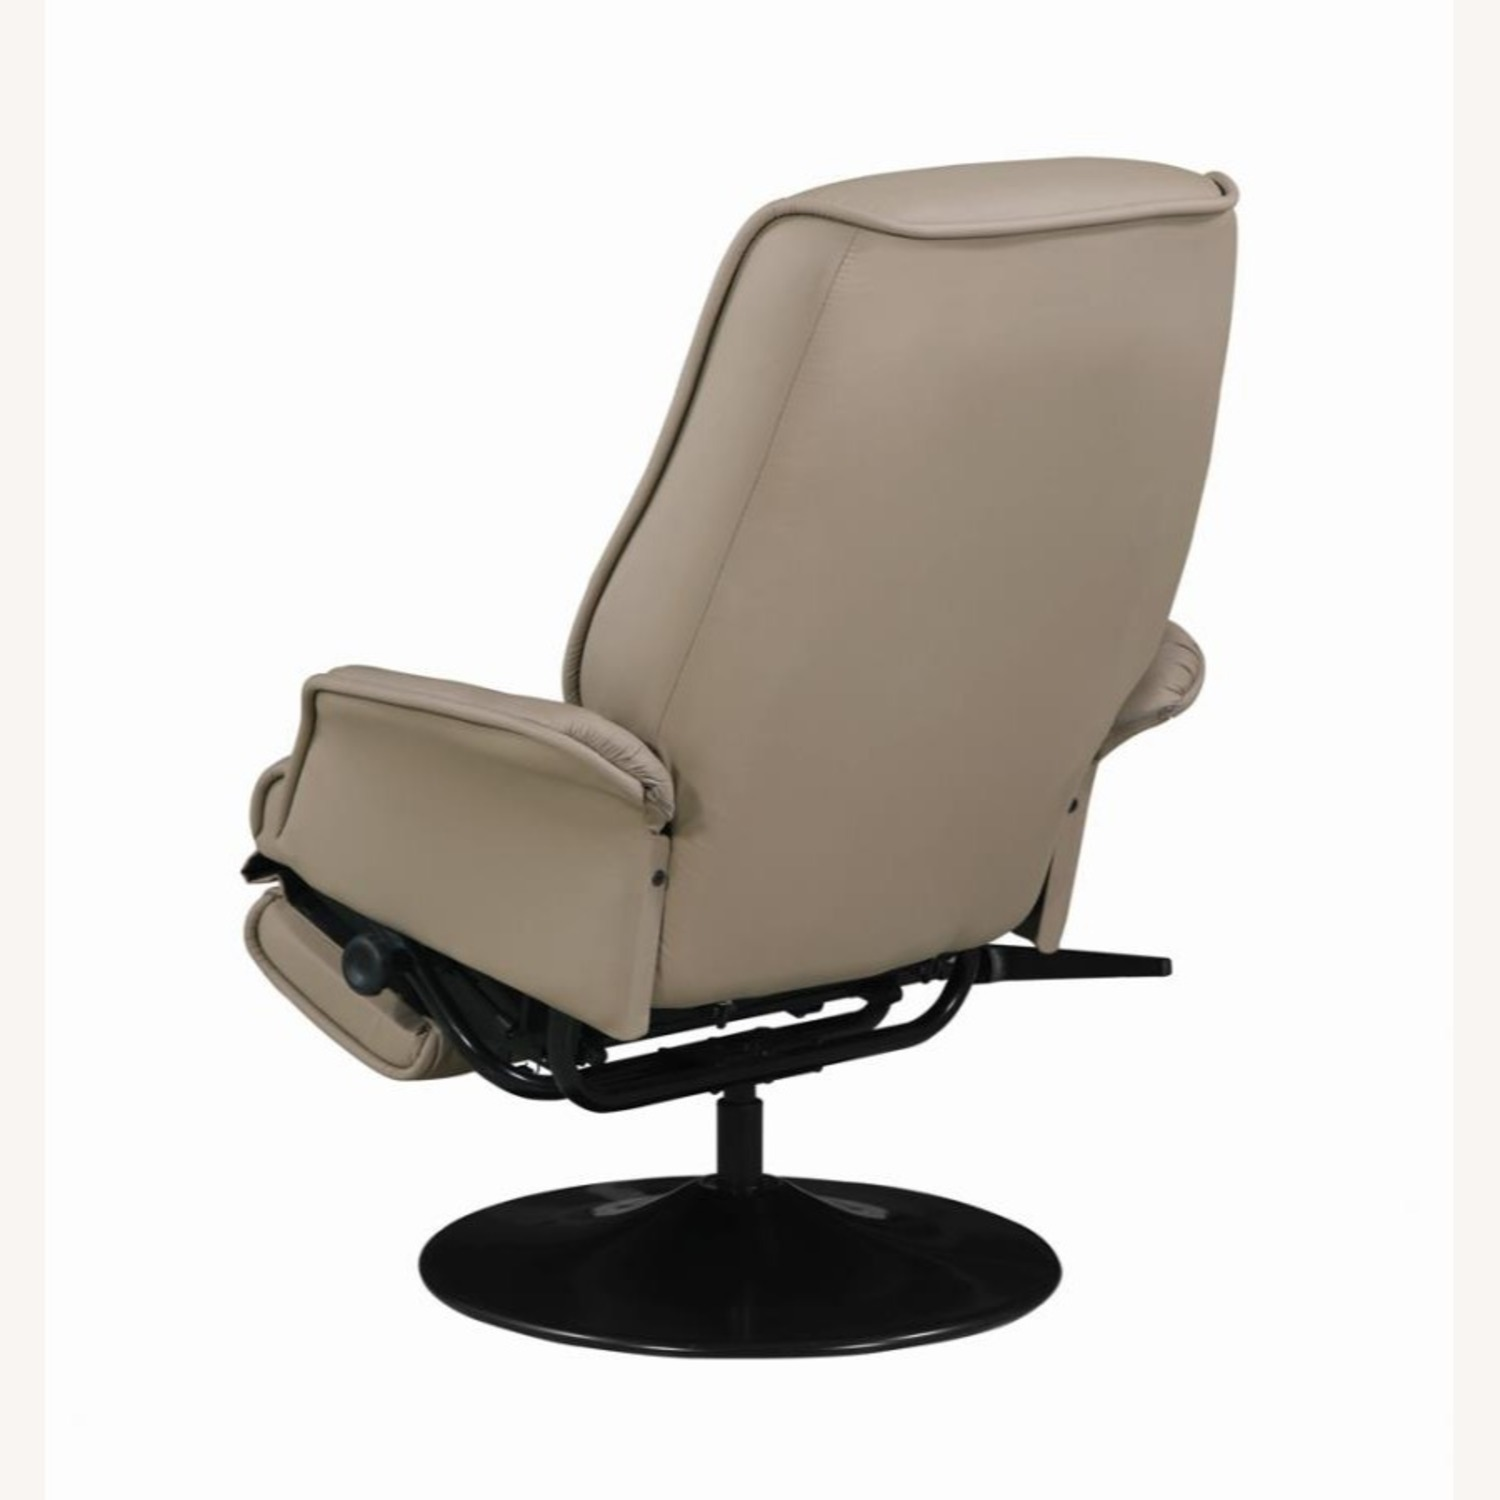 Swivel Recliner In Classic Beige Leatherette - image-5